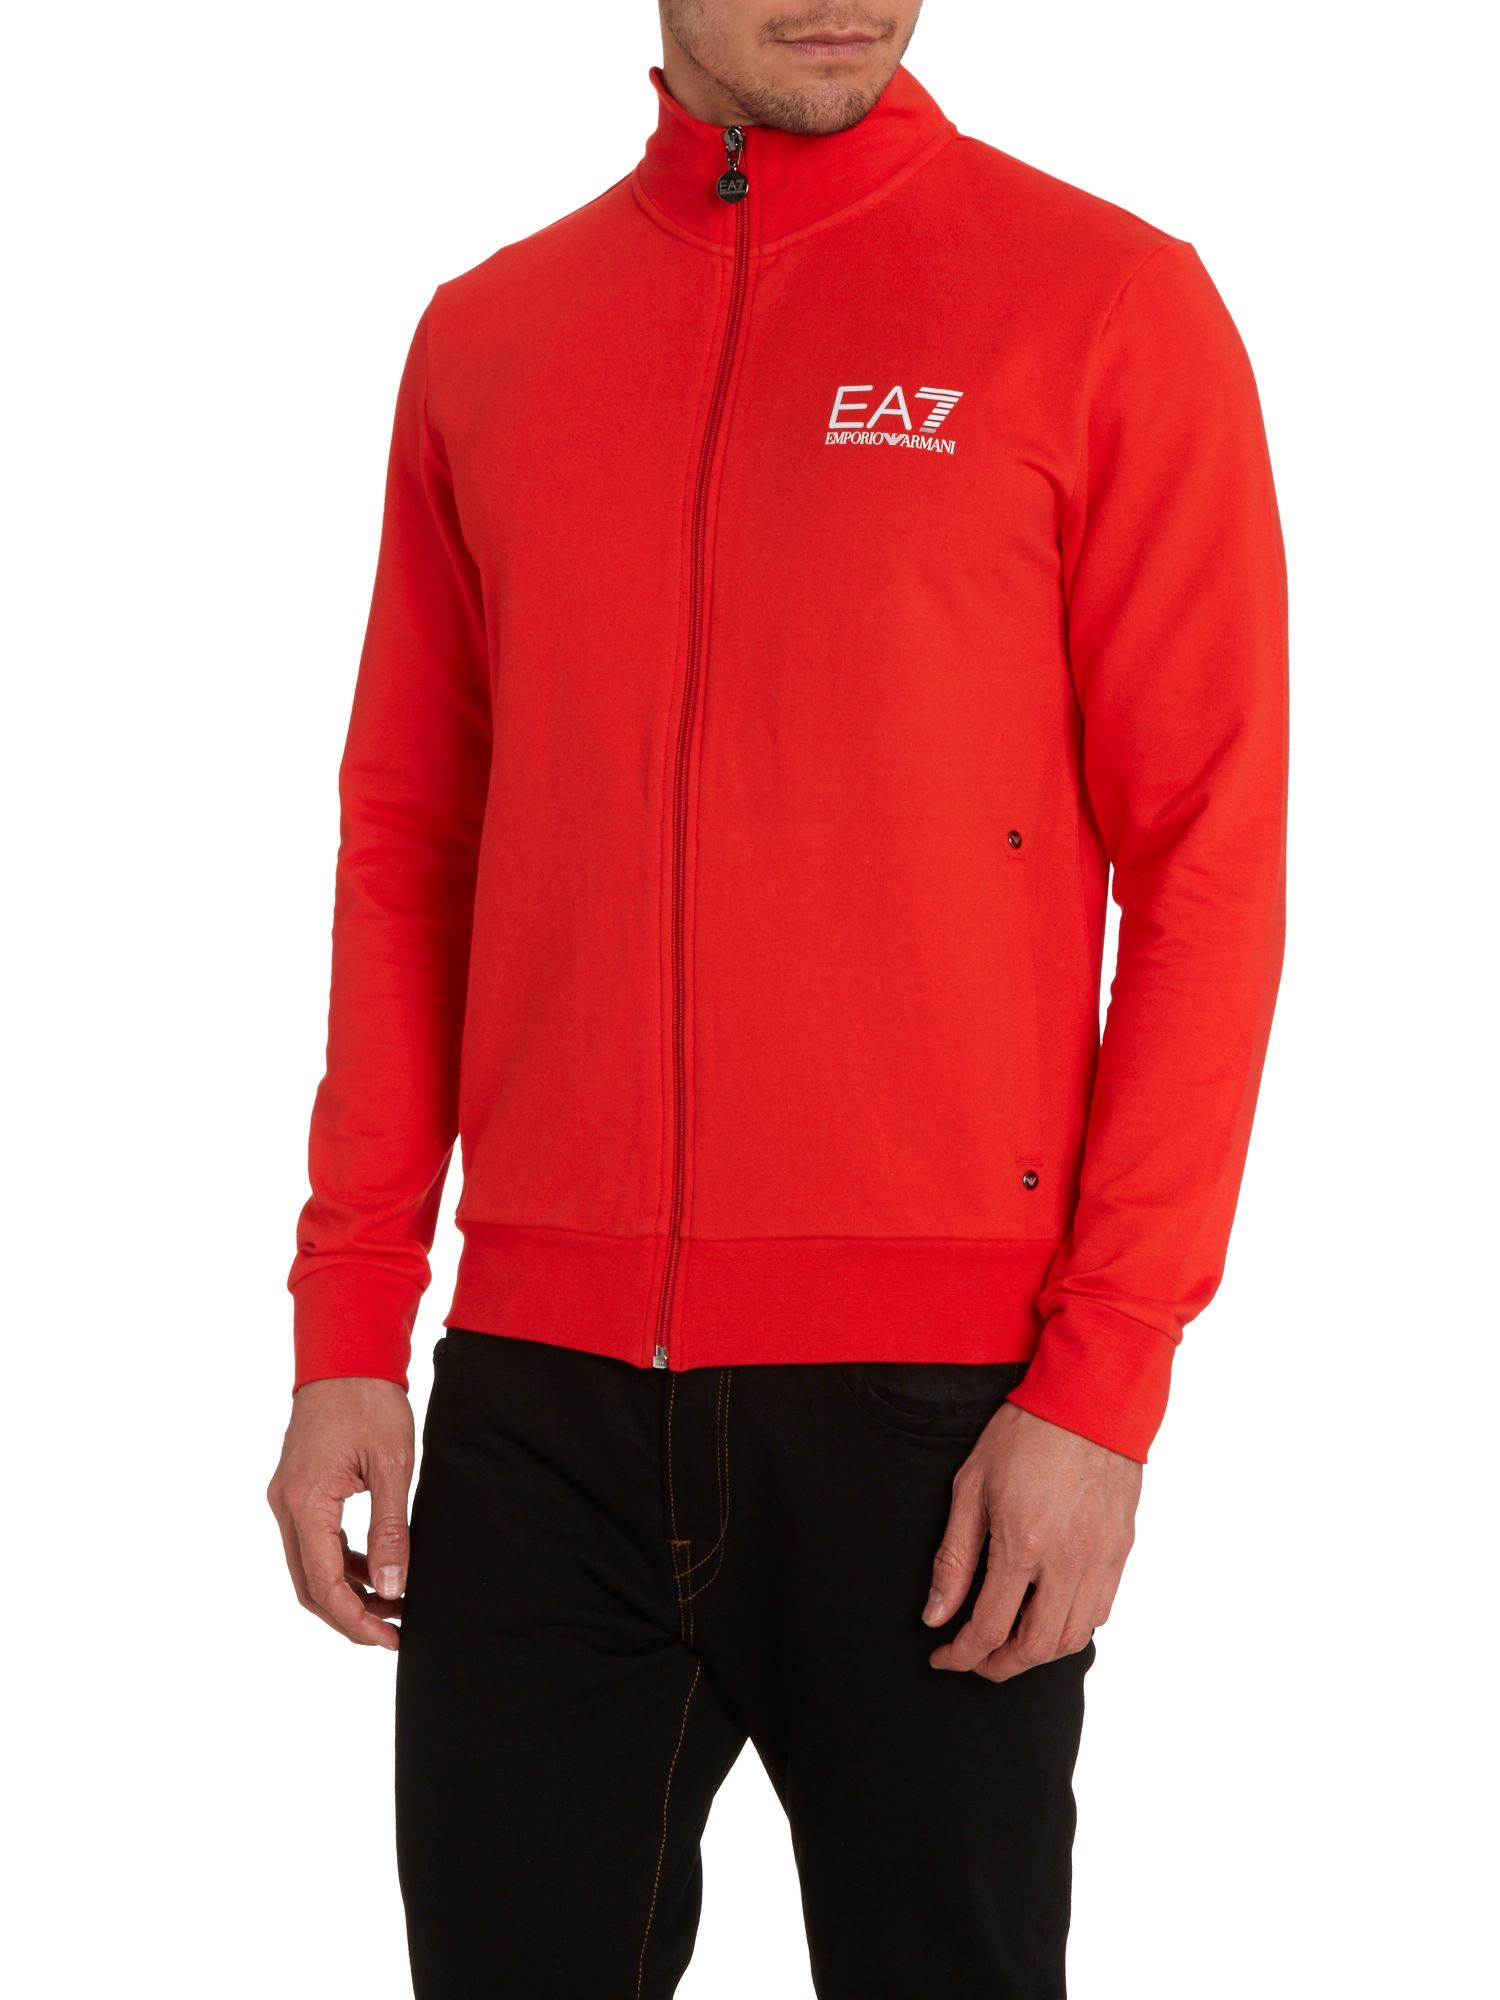 Zip through train core sweatshirt